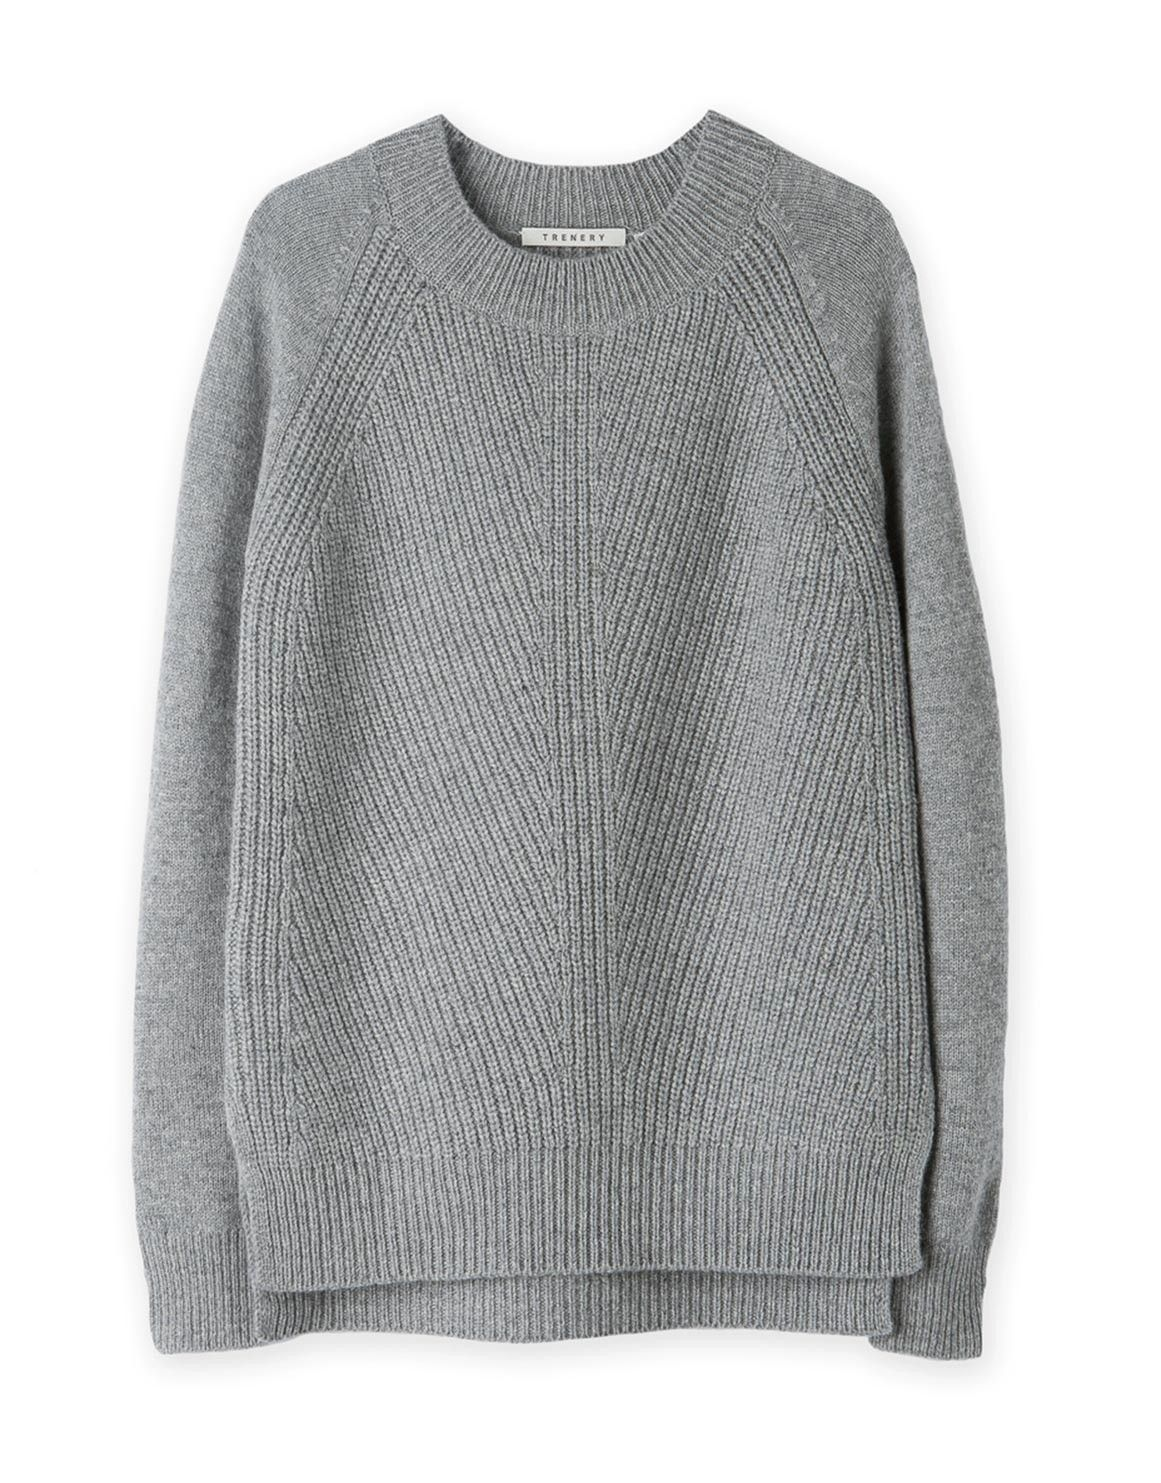 Textured Stitch Knit